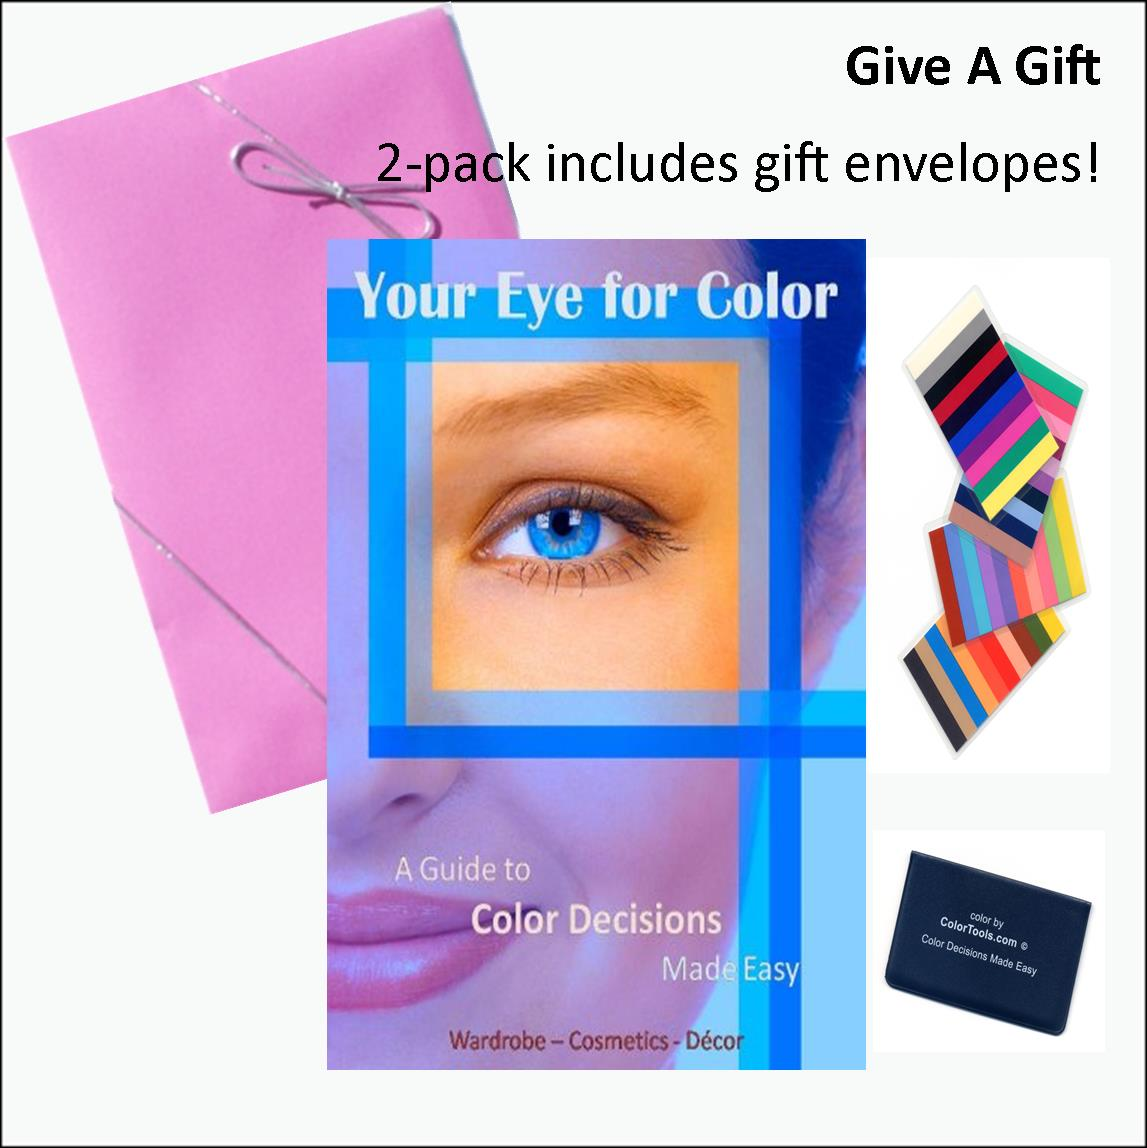 Personal Color Analysis Kit- Special Gift 2-Pack